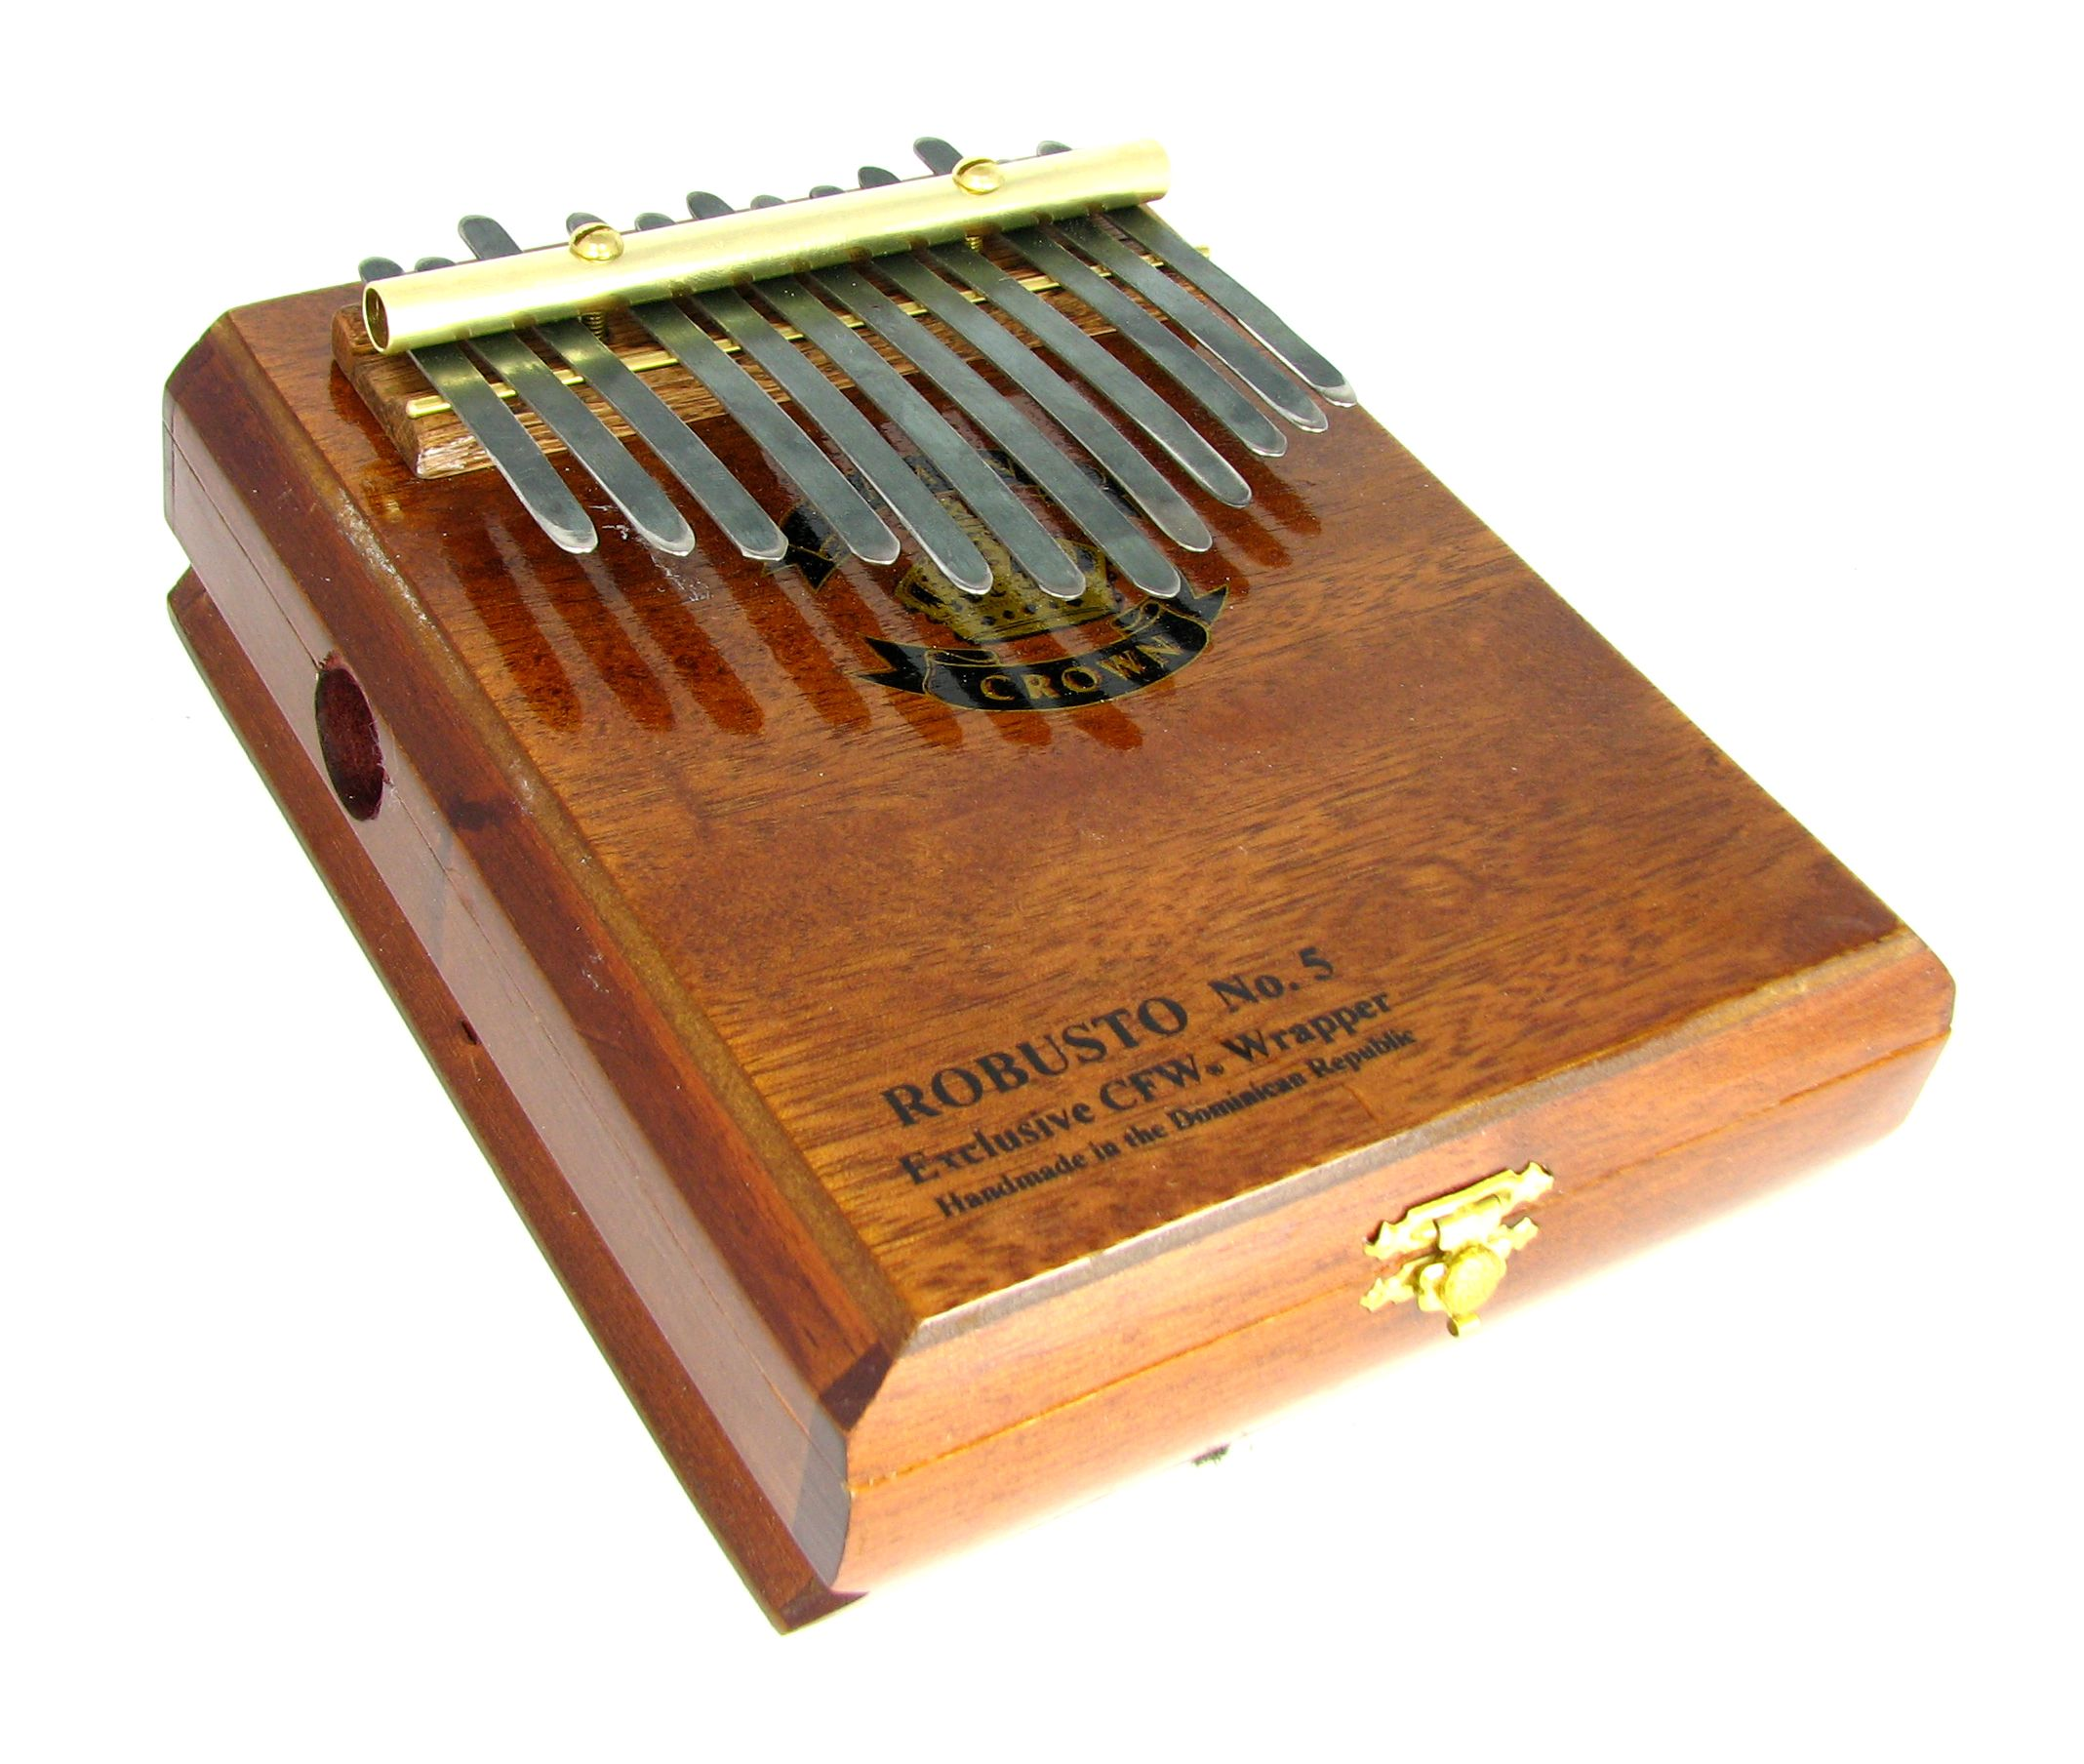 Home Trend Mark 17 Key Kalimba Bamboo Single Board Thumb Piano Mbira Natural Mini Keyboard Instrument With Complete Accessories Professional Design